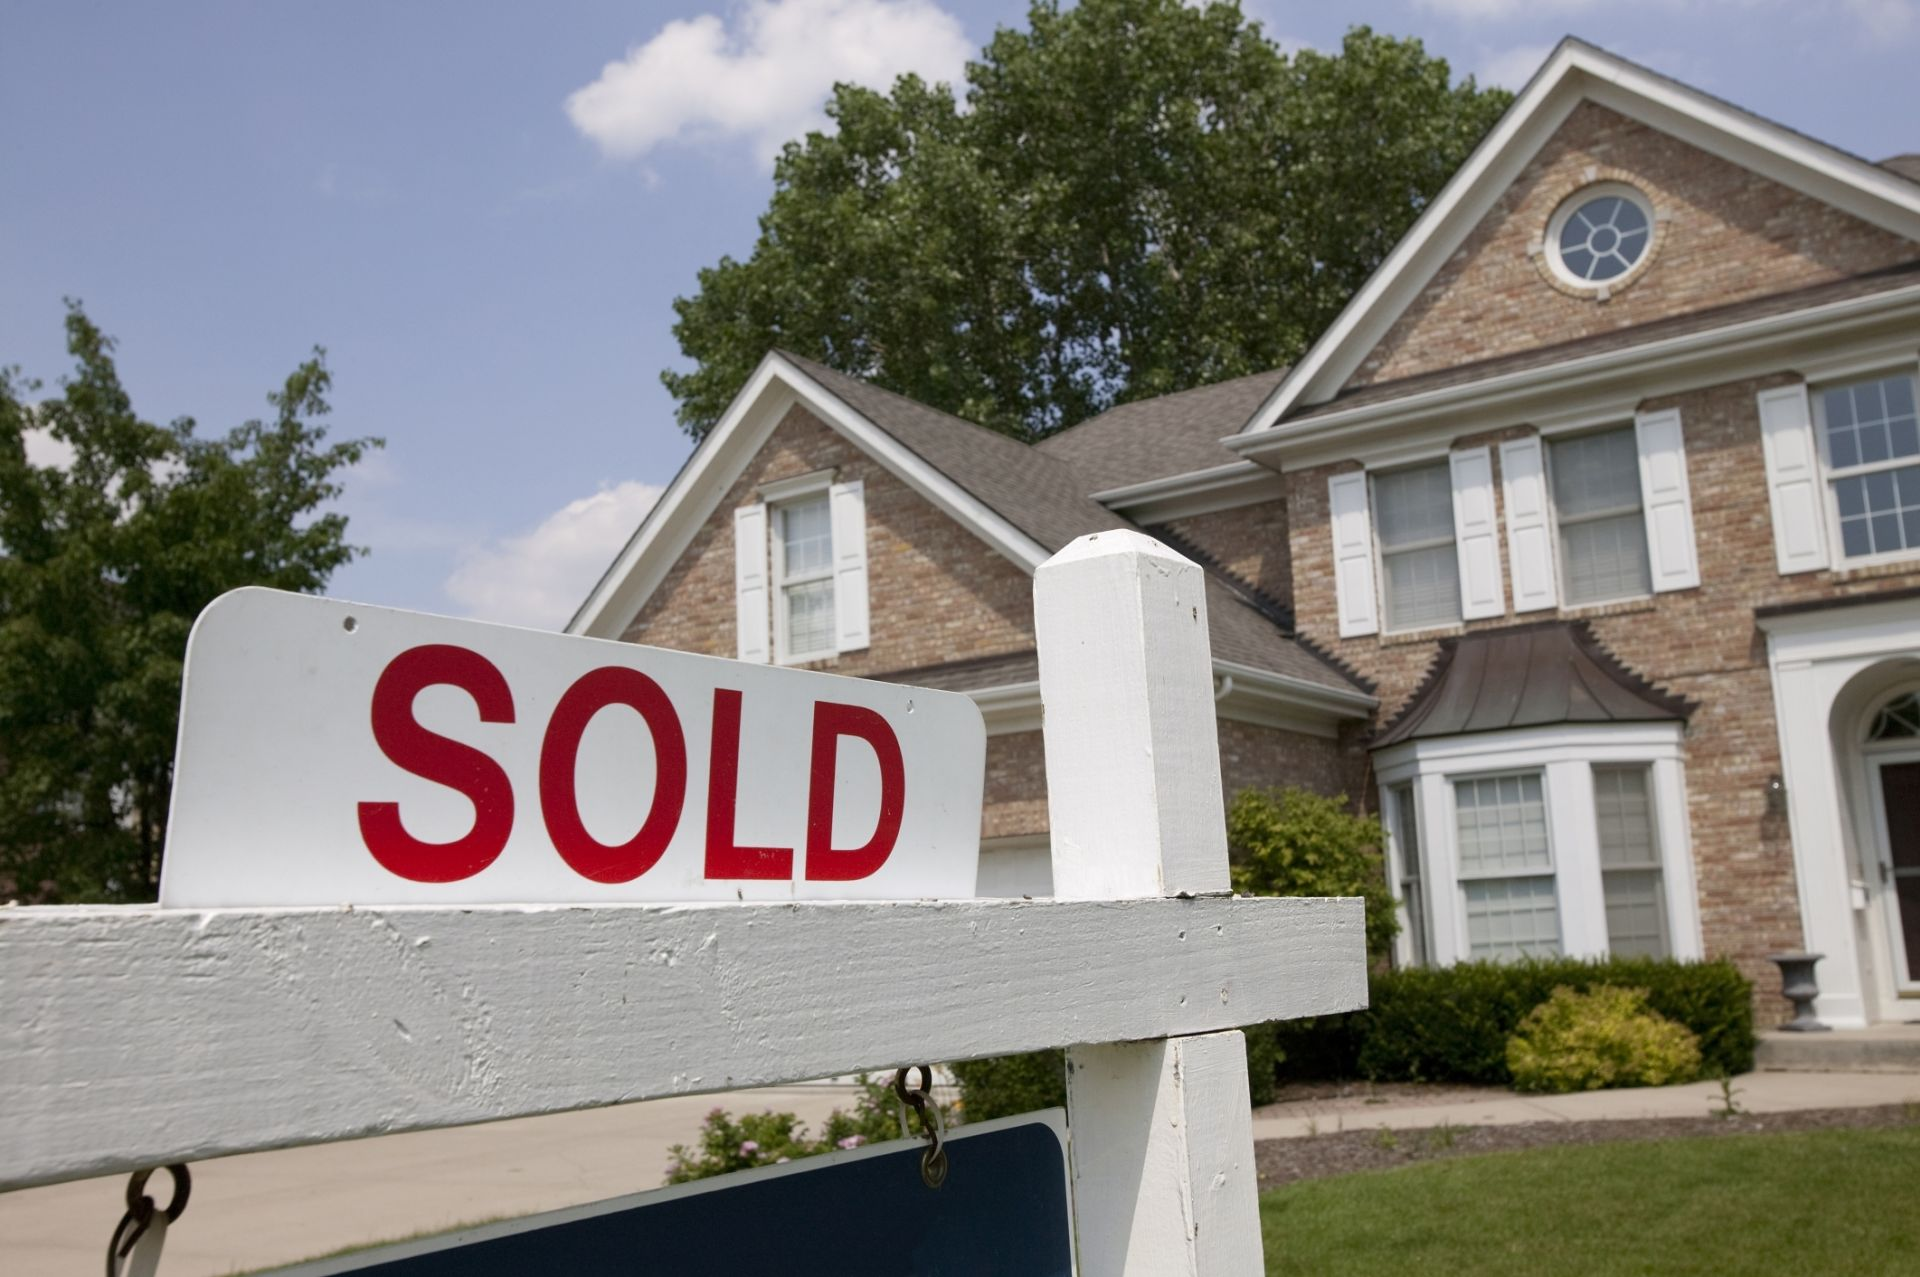 50% of Homes Sold in 30 Days in March